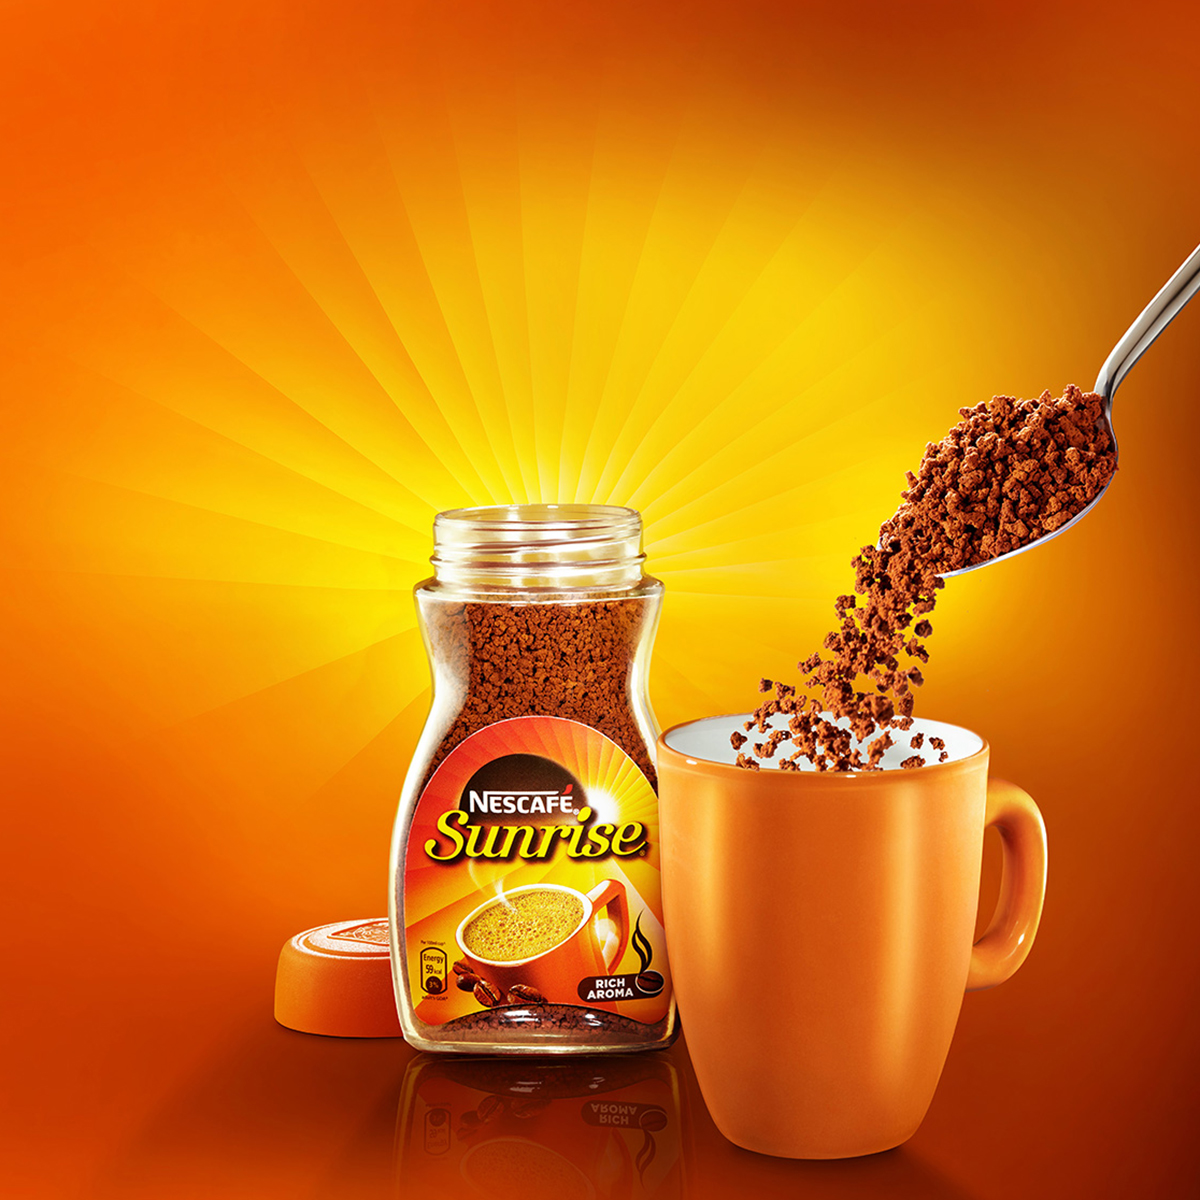 NESCAFE SUNRISE